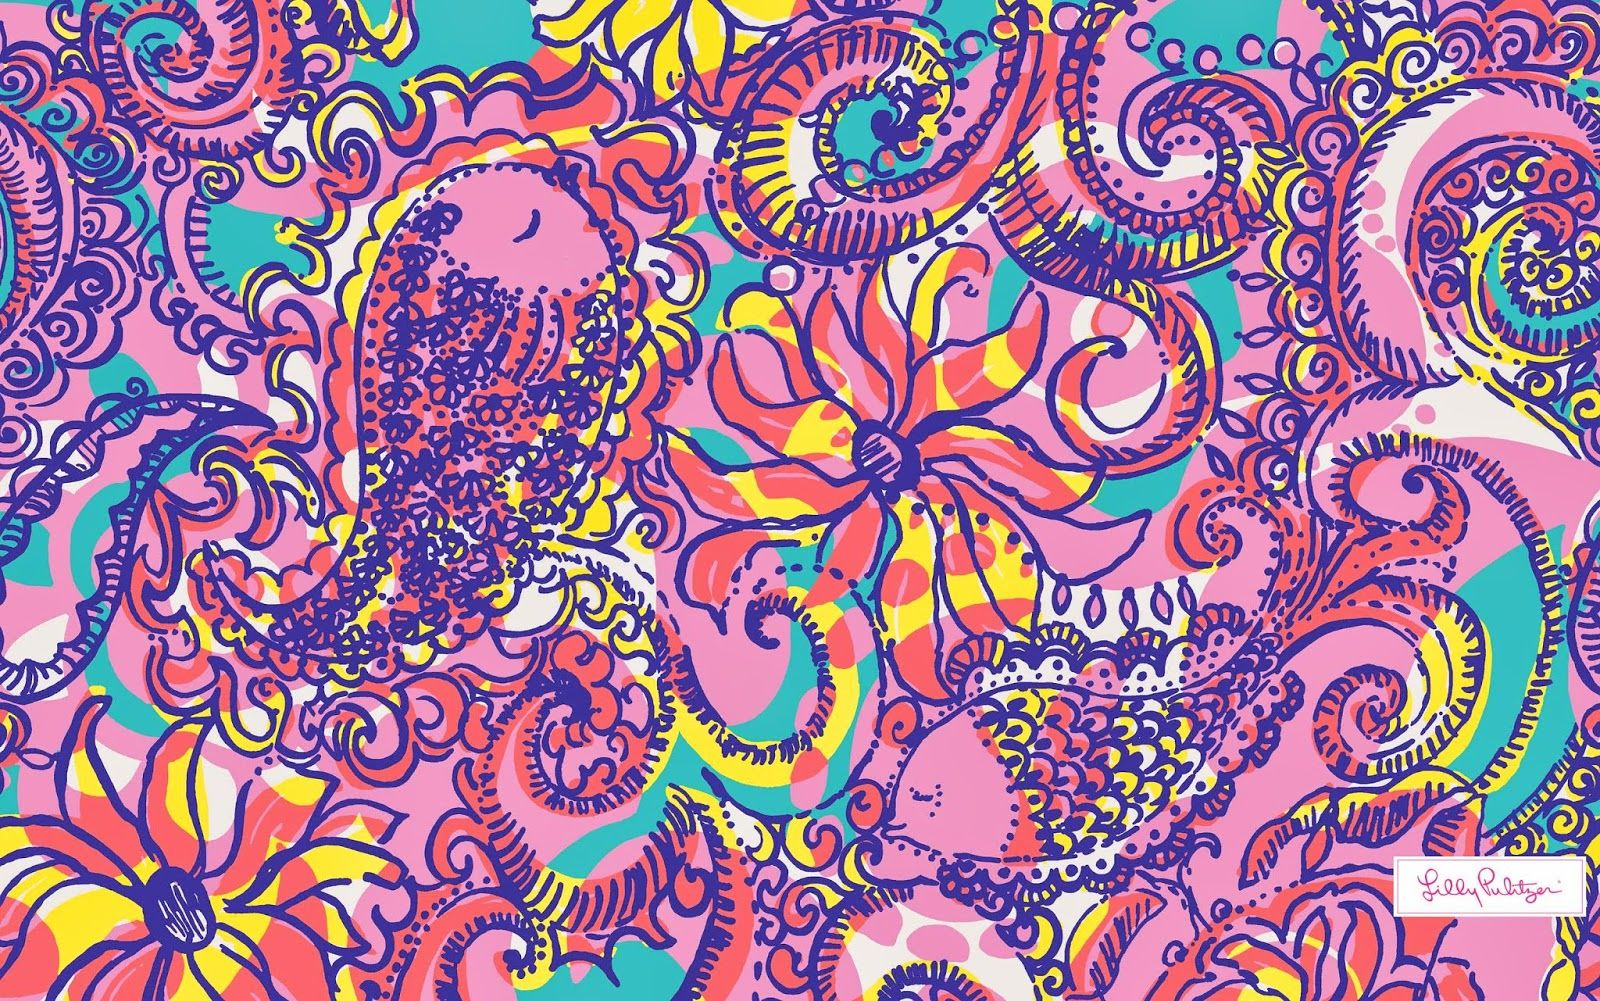 Canadianprep Lilly Desktop Wallpaper Good For Binder Covers Lilly Pulitzer Iphone Wallpaper Lilly Pulitzer Patterns Flamingo Wallpaper